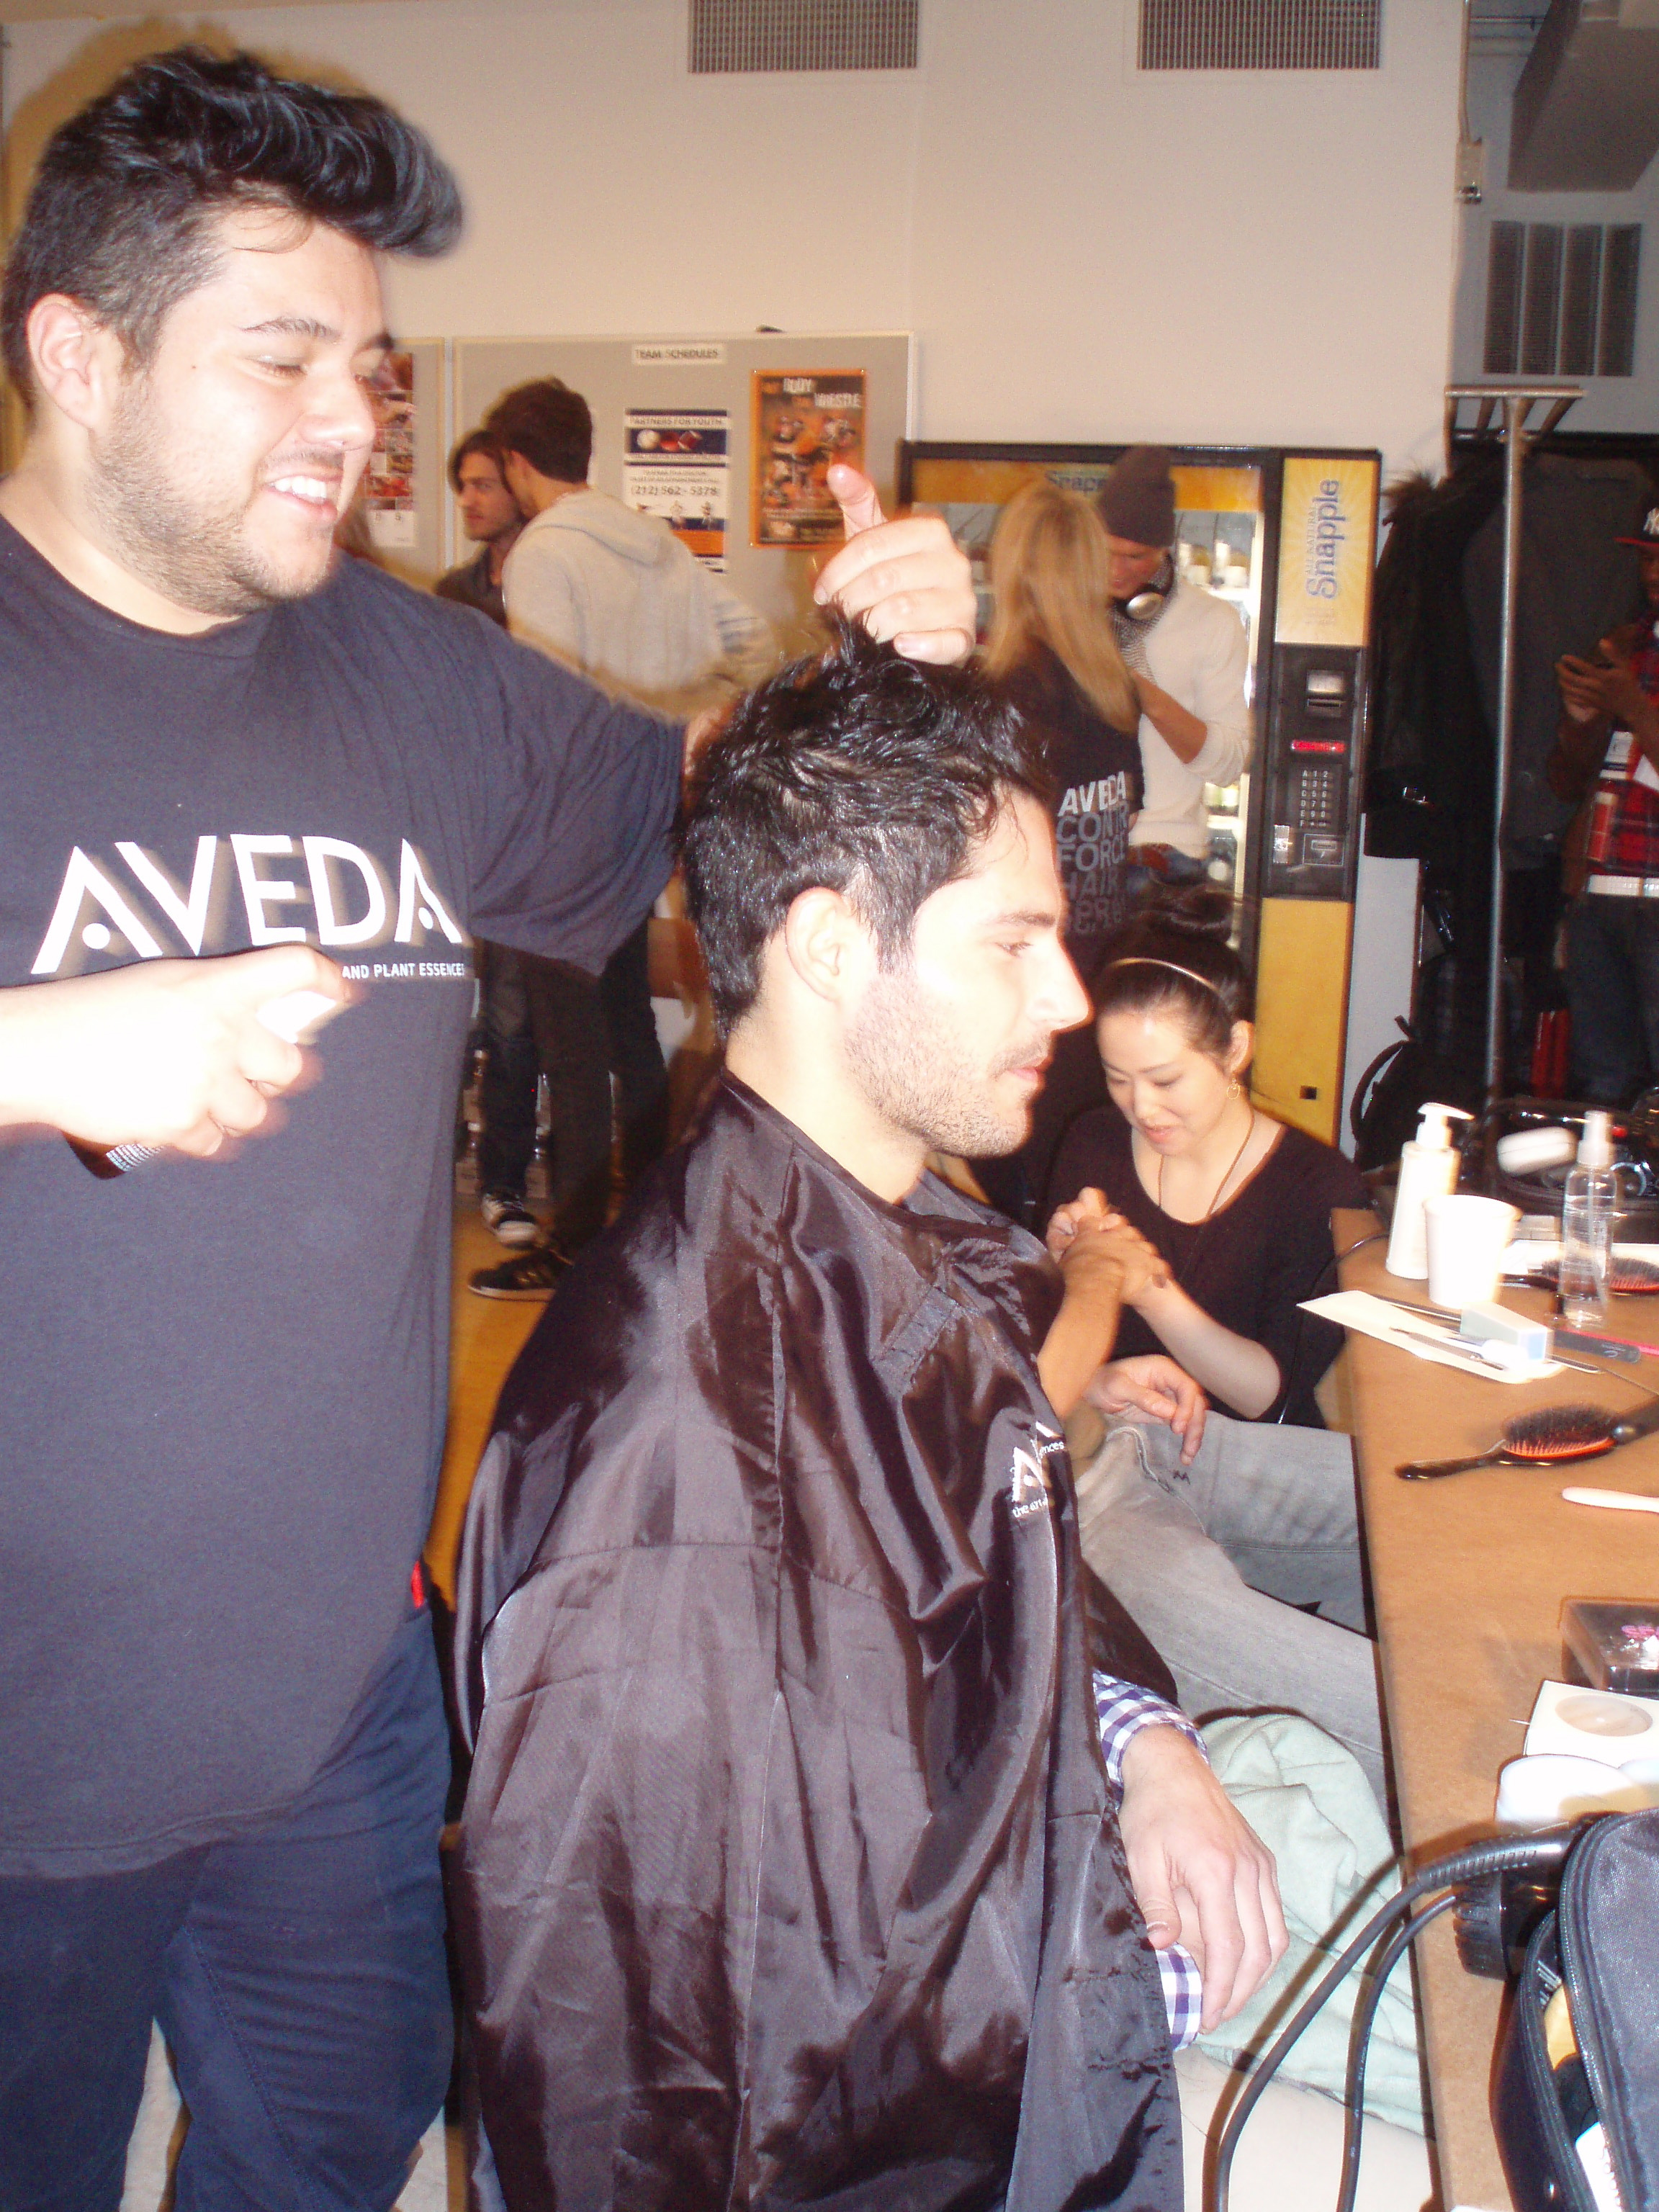 An Aveda stylist crafts a rugged and textured look.